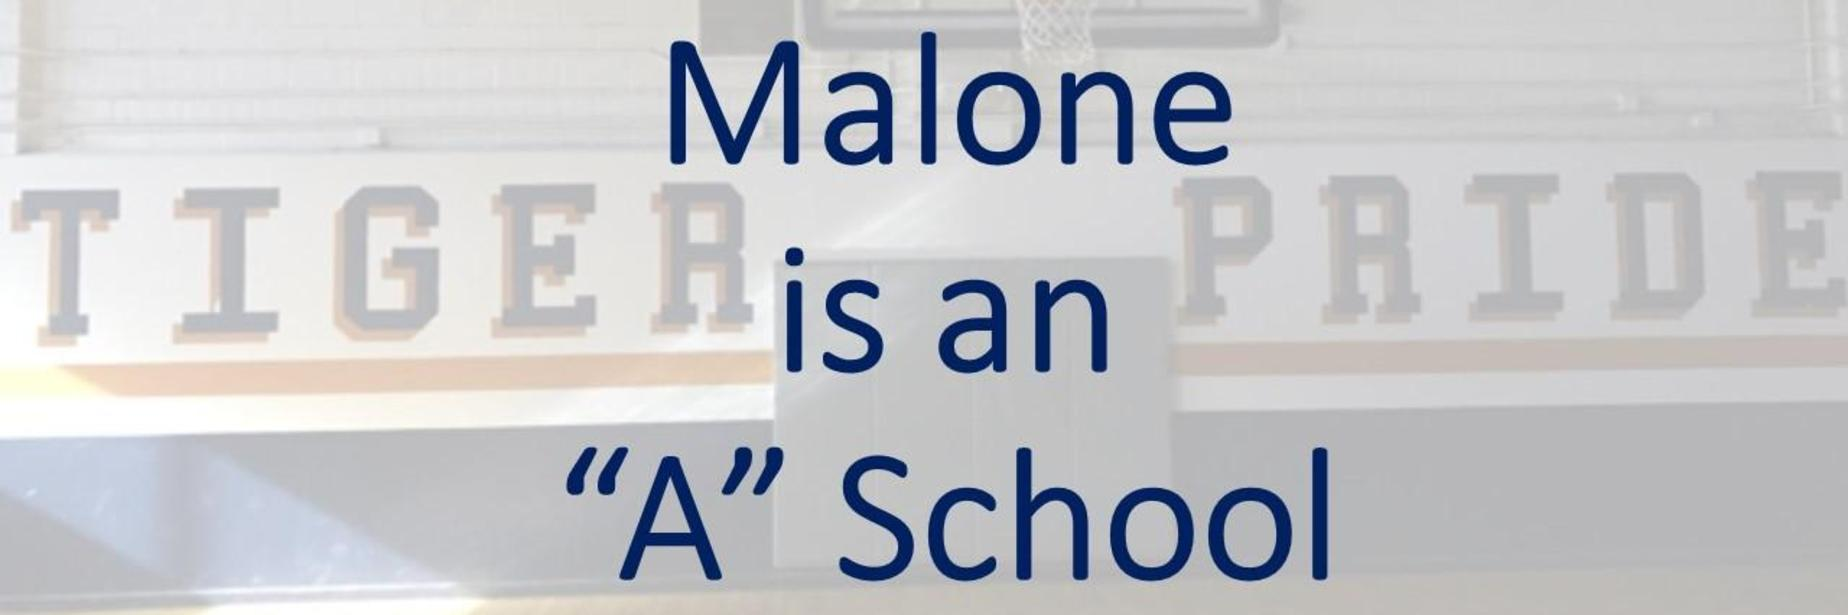 malone is an a school